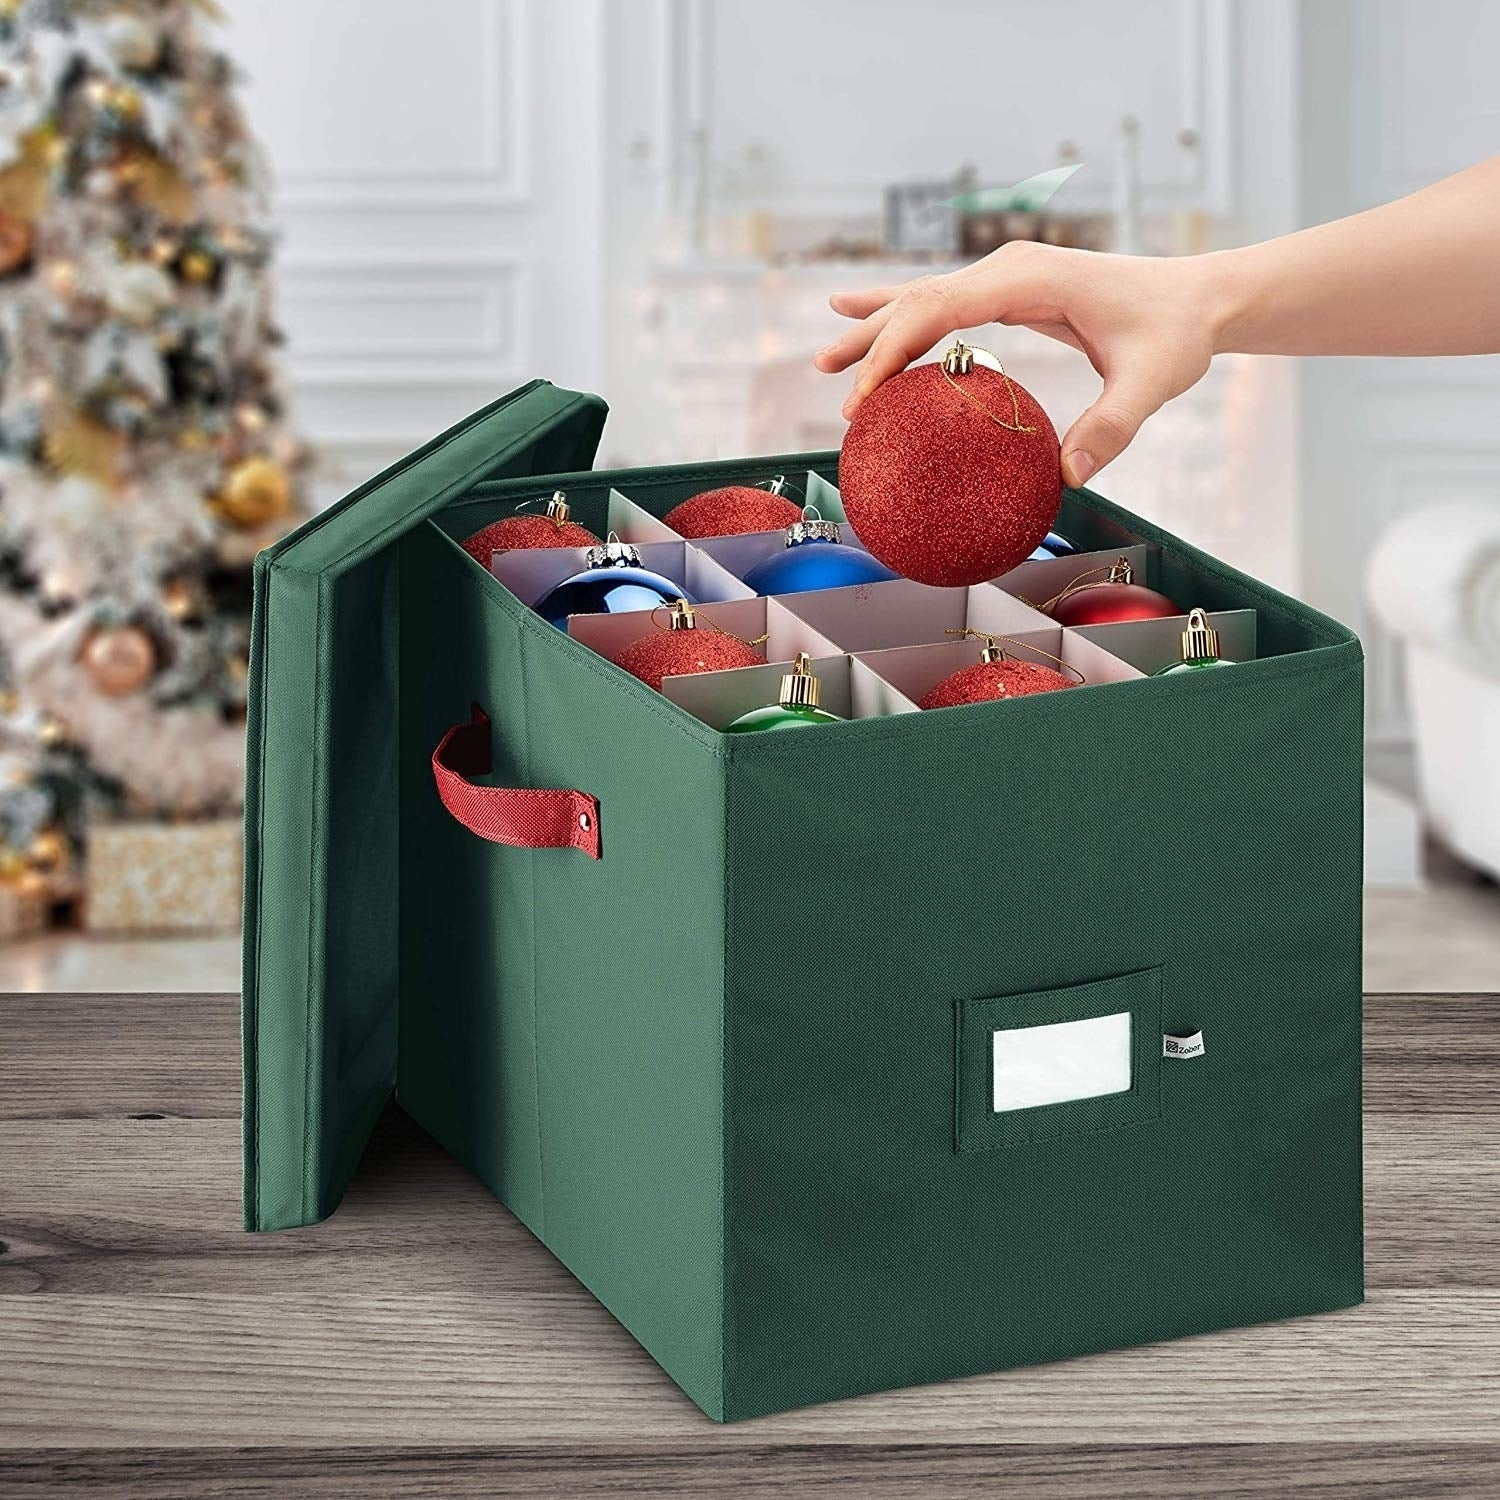 Premium Christmas Ornament Storage Box for Large Ornaments Storage Container Hold 36 Holiday Ornaments and Xmas Decorations Accessories/—Tear-Proof 600D Oxford 4-inch Compartment